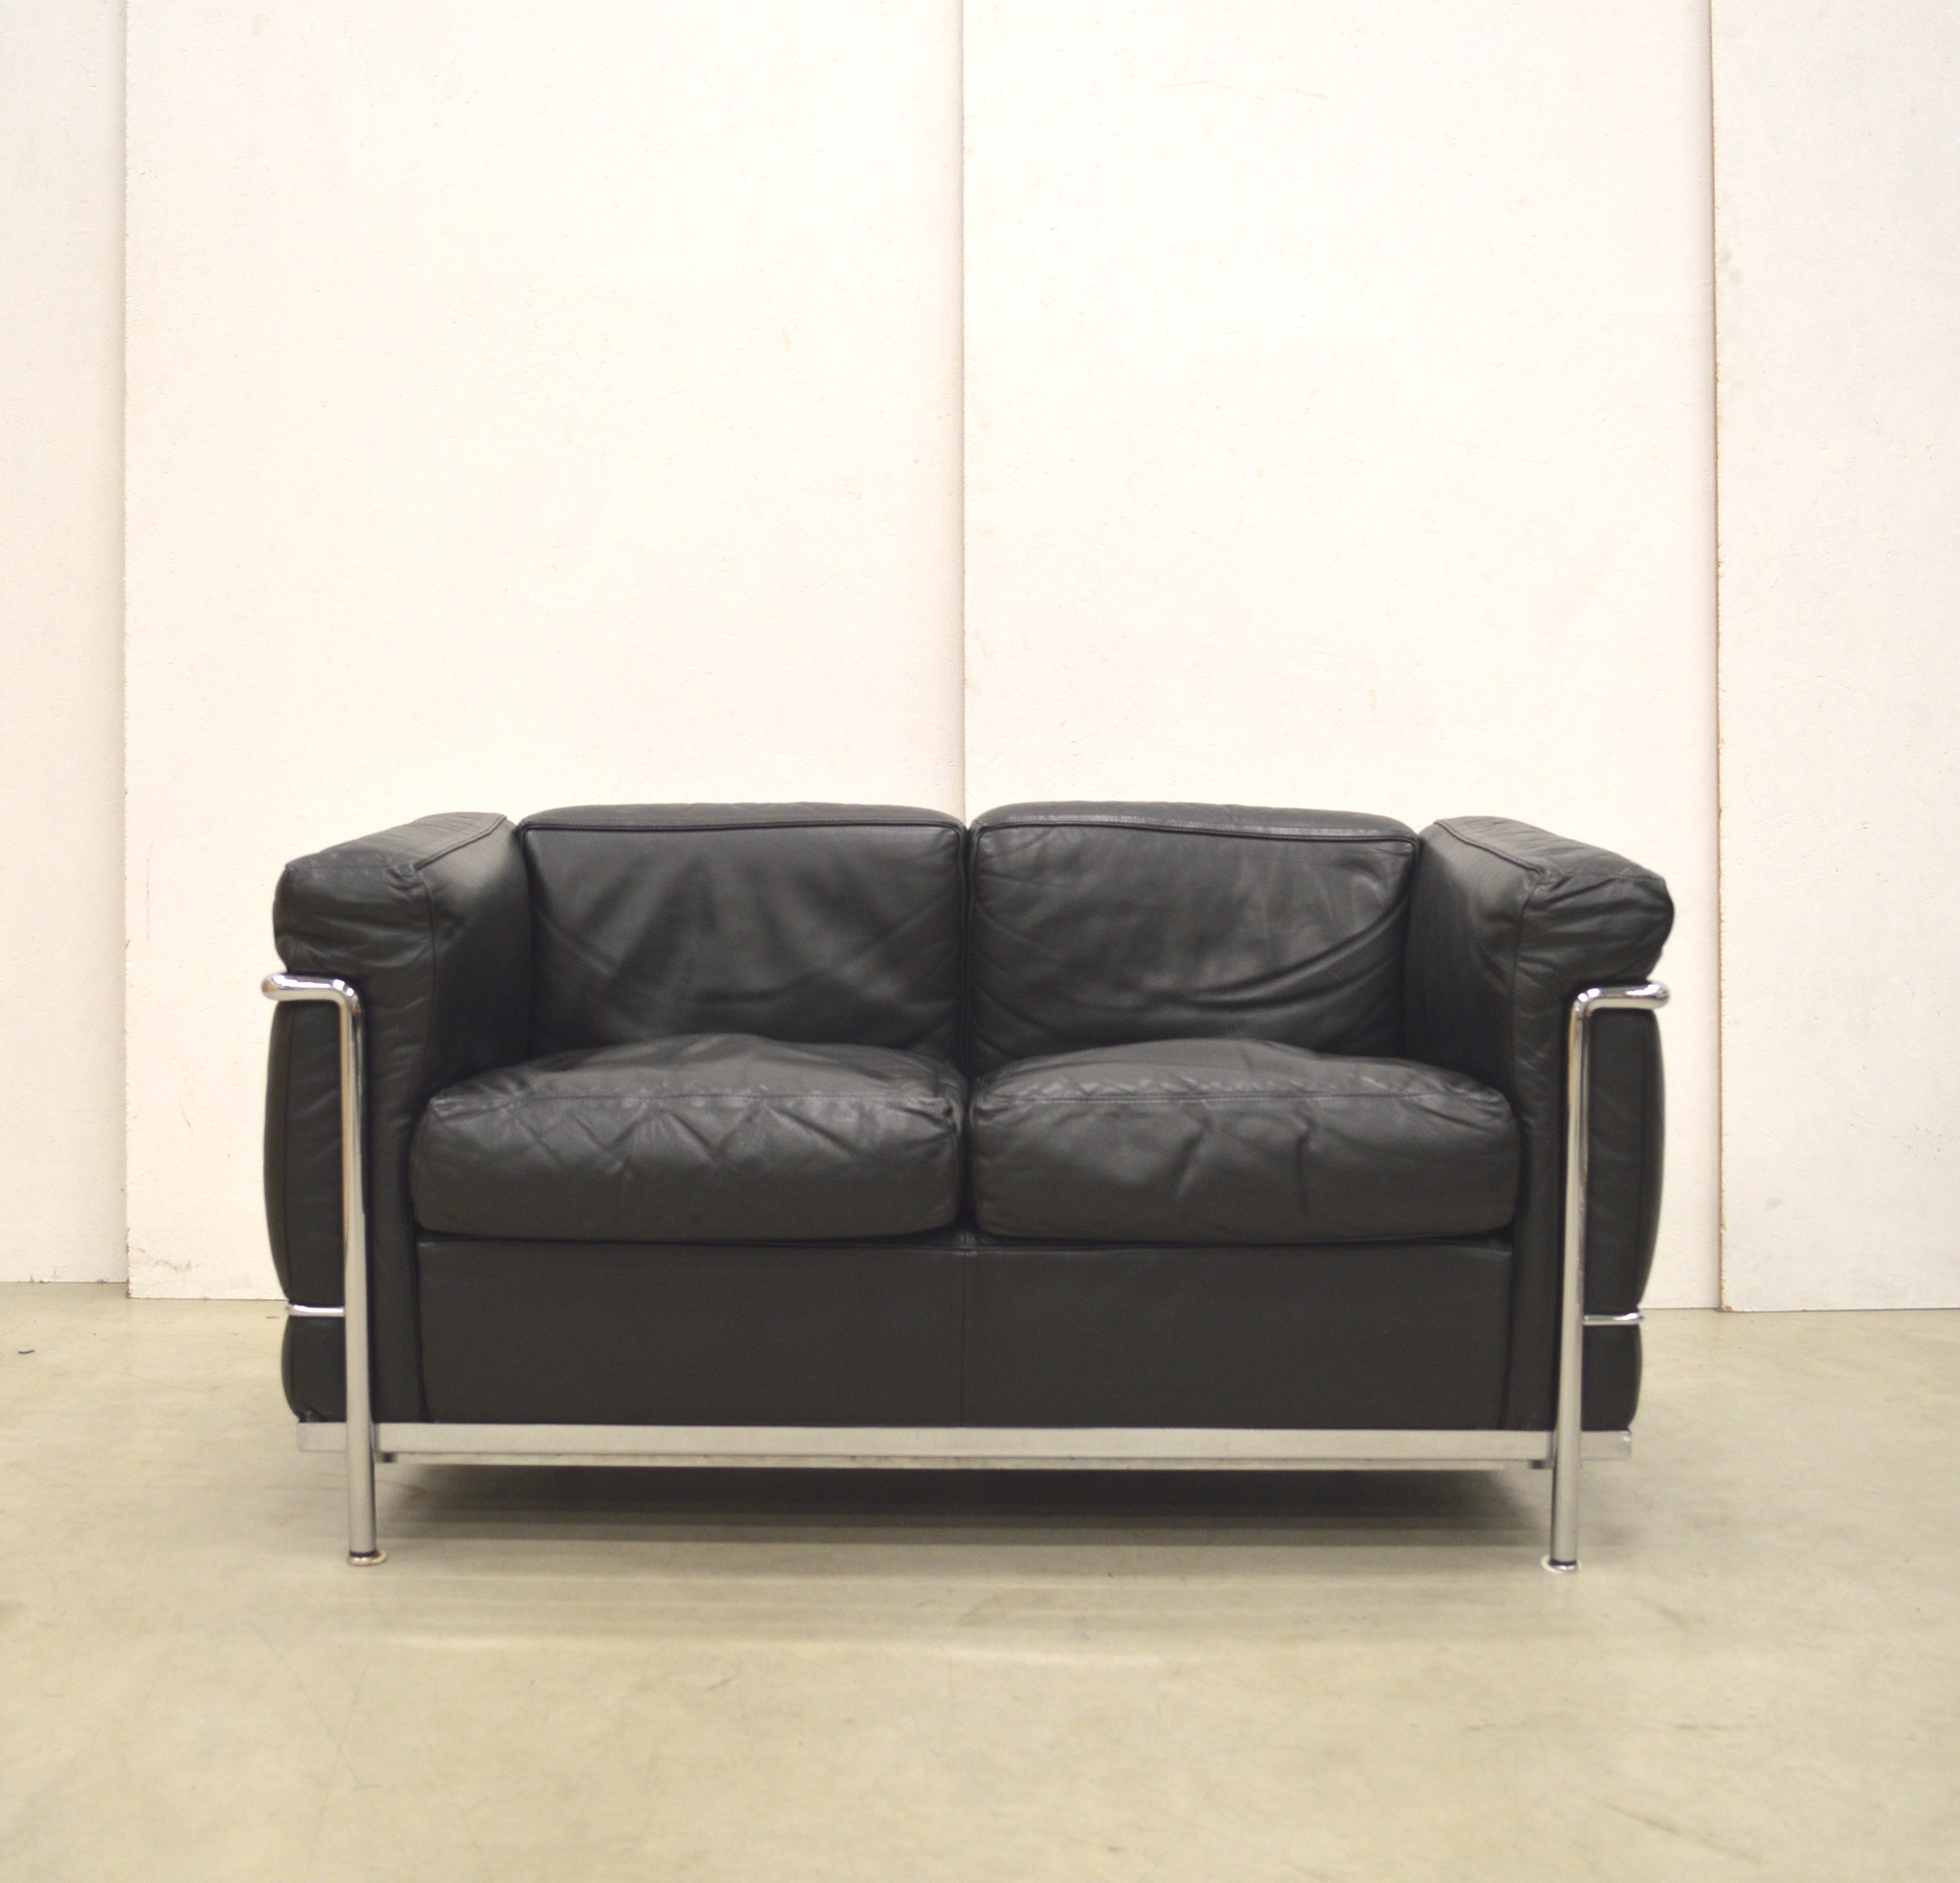 Lc2 Sessel Gebraucht Cassina Lc2 Sofa By Le Corbusier Interior Aksel